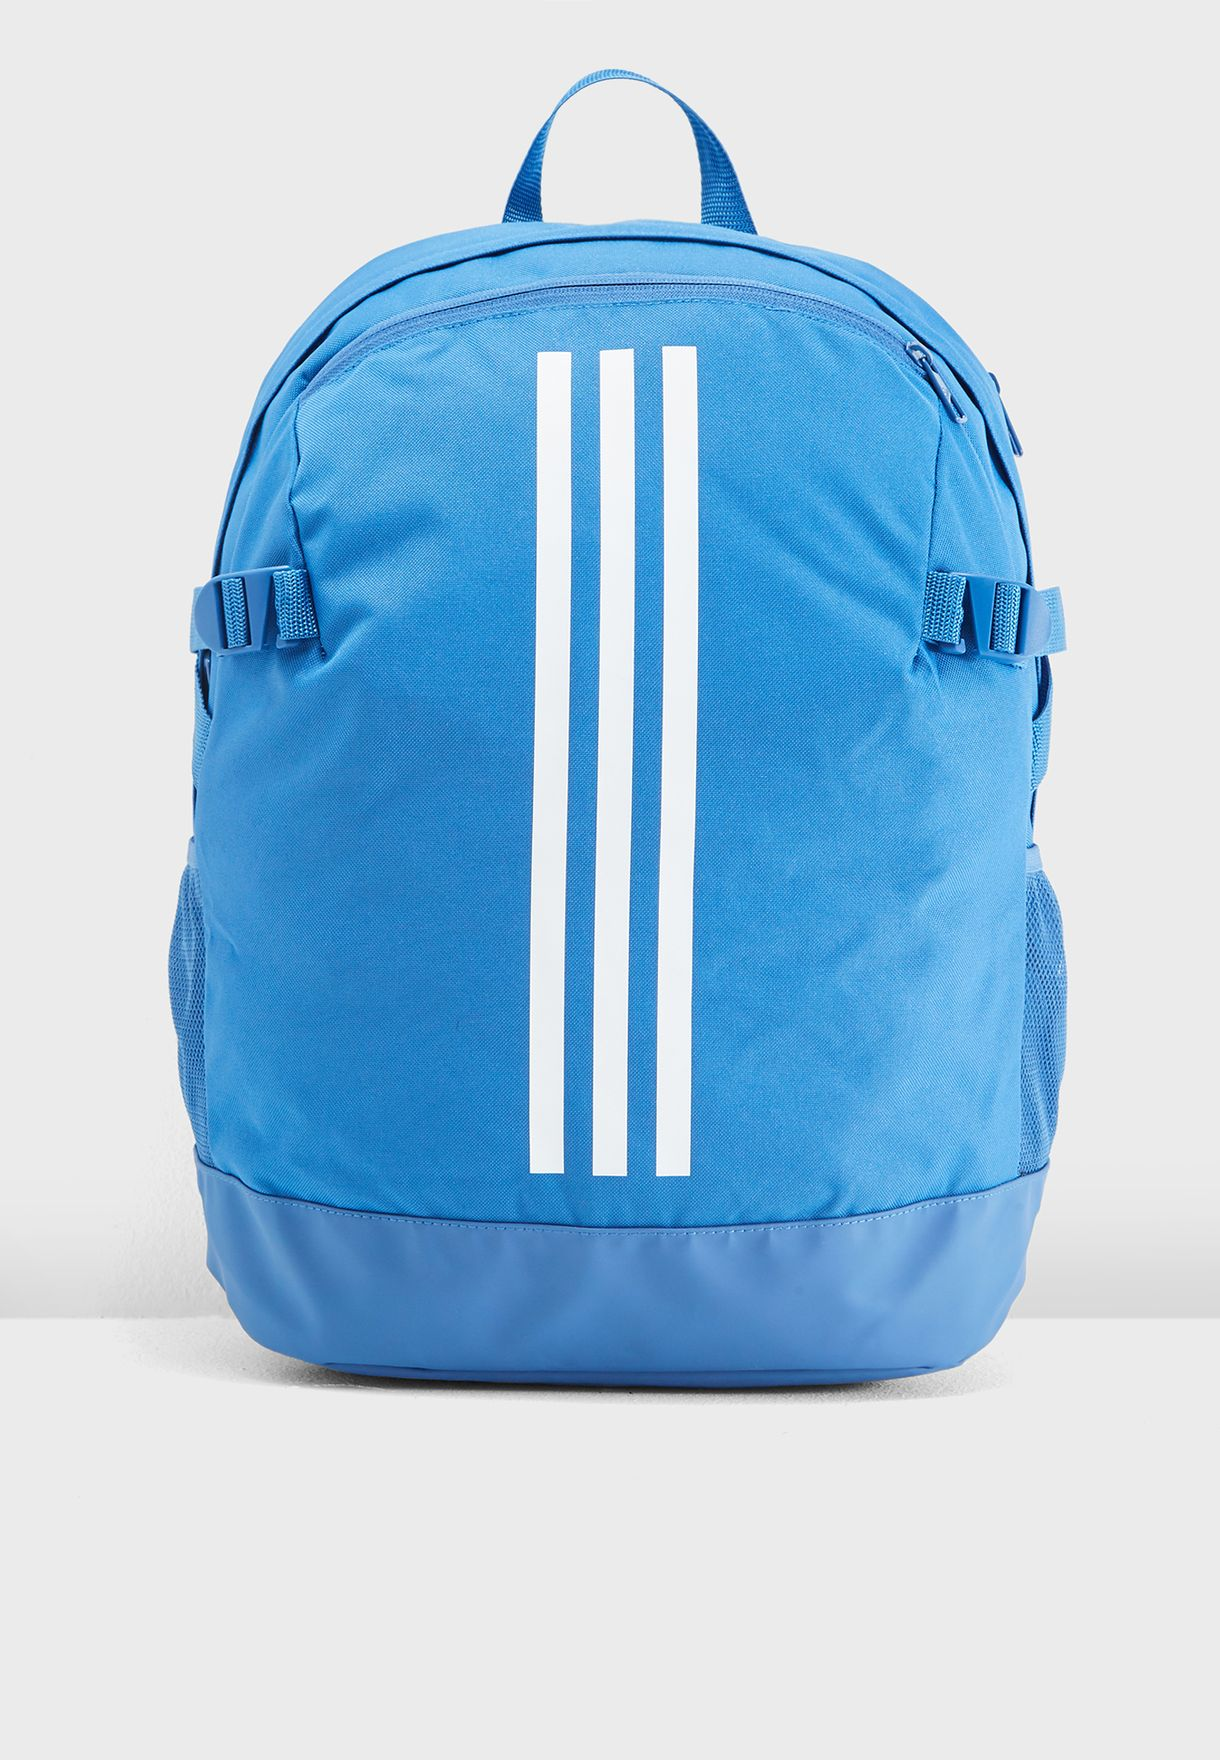 47e05b0e6f20 Shop adidas blue Medium 3 Stripe Power Backpack DM7684 for Men ...